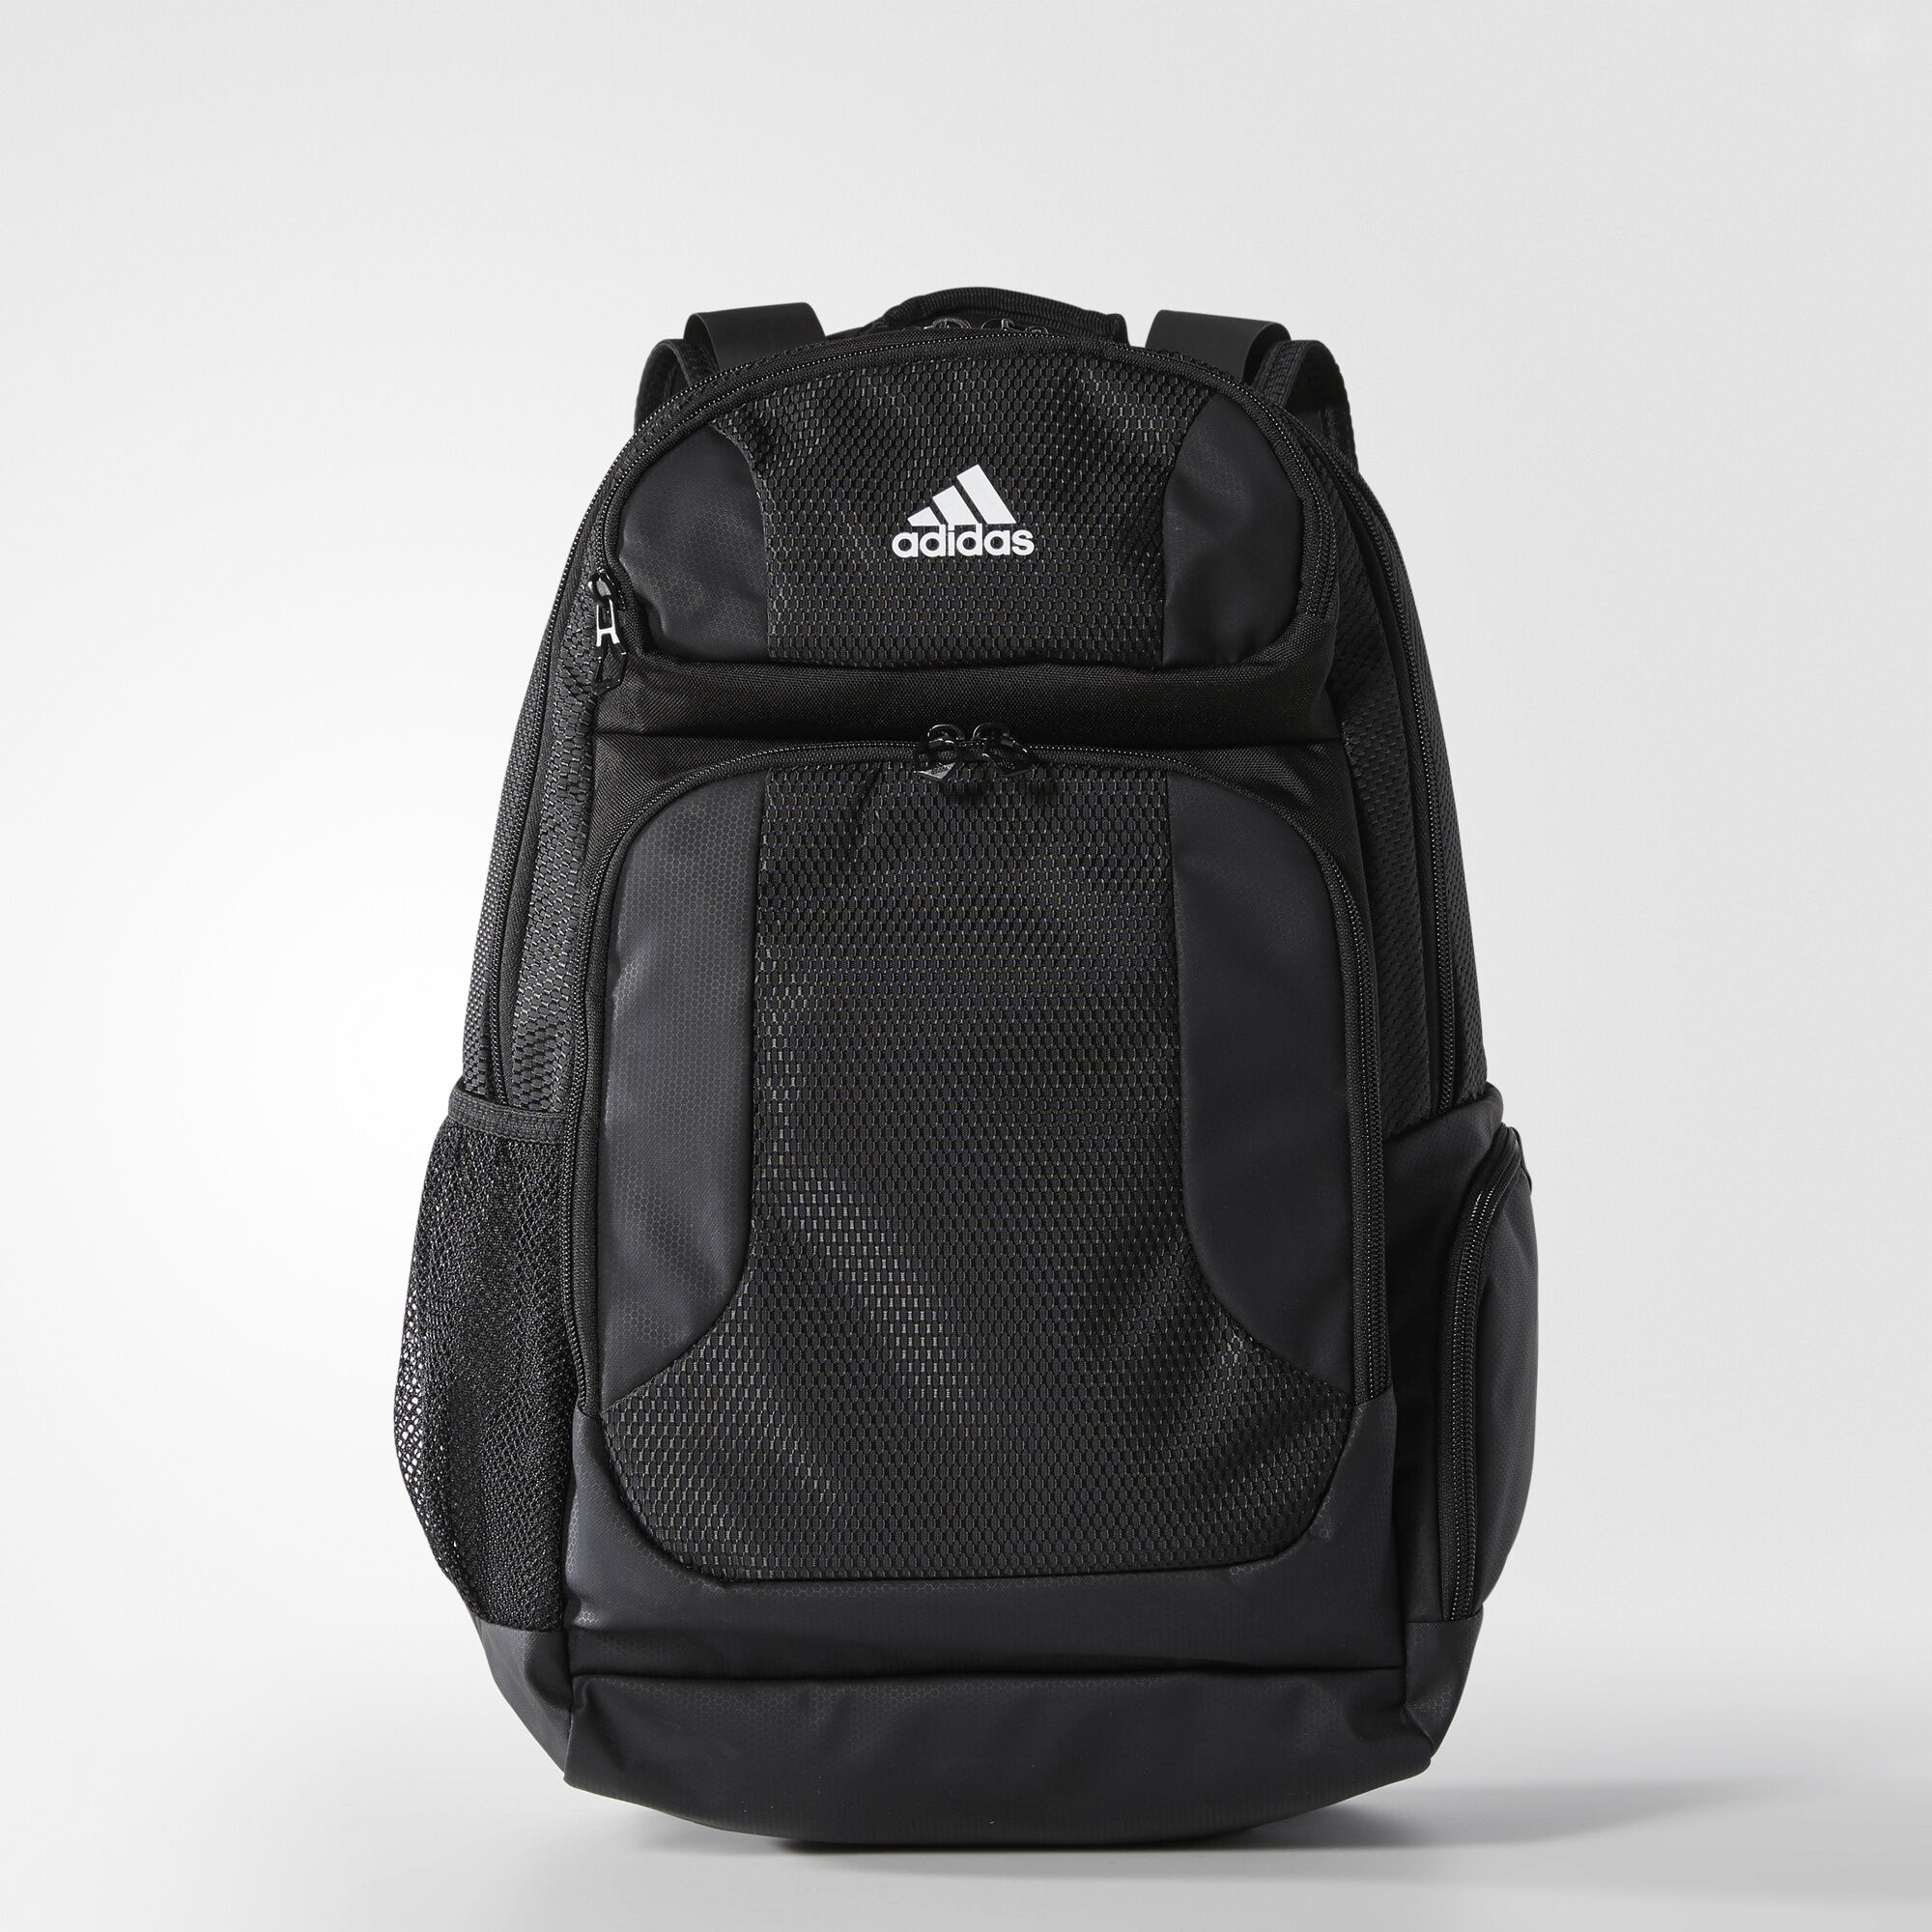 10793a8b2e1 Buy adidas sling bag for men > OFF58% Discounted